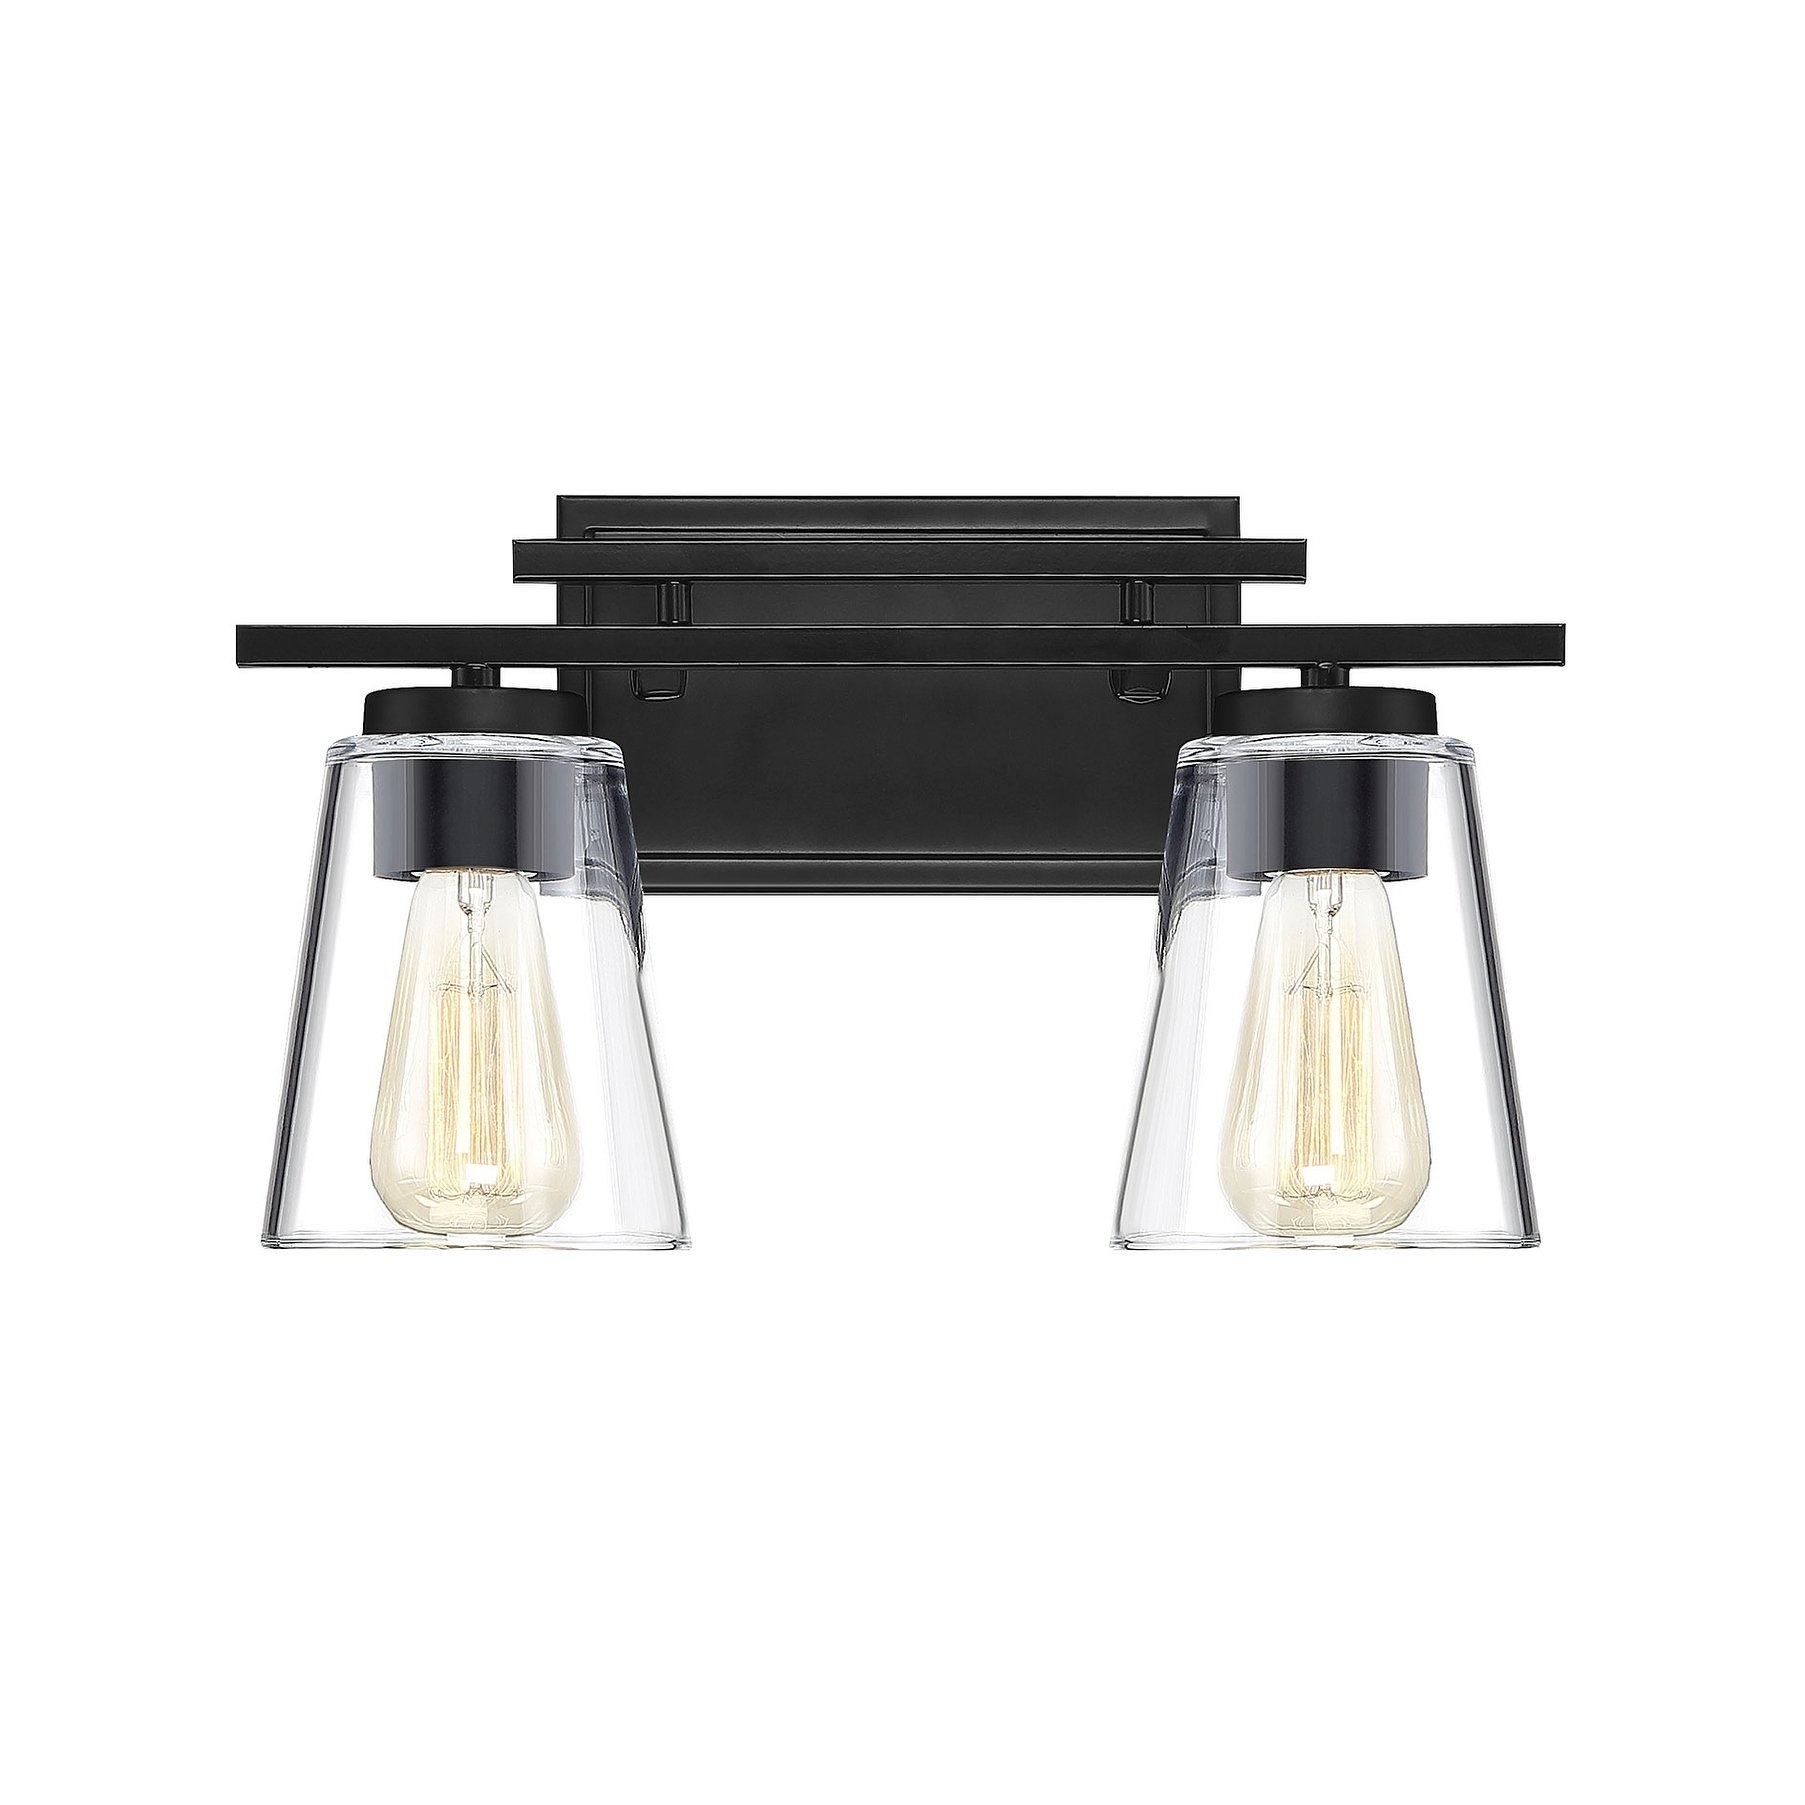 NEW Savoy House Vanity 3 Light Bathroom Fixture in Flat White Cottage Style Chic